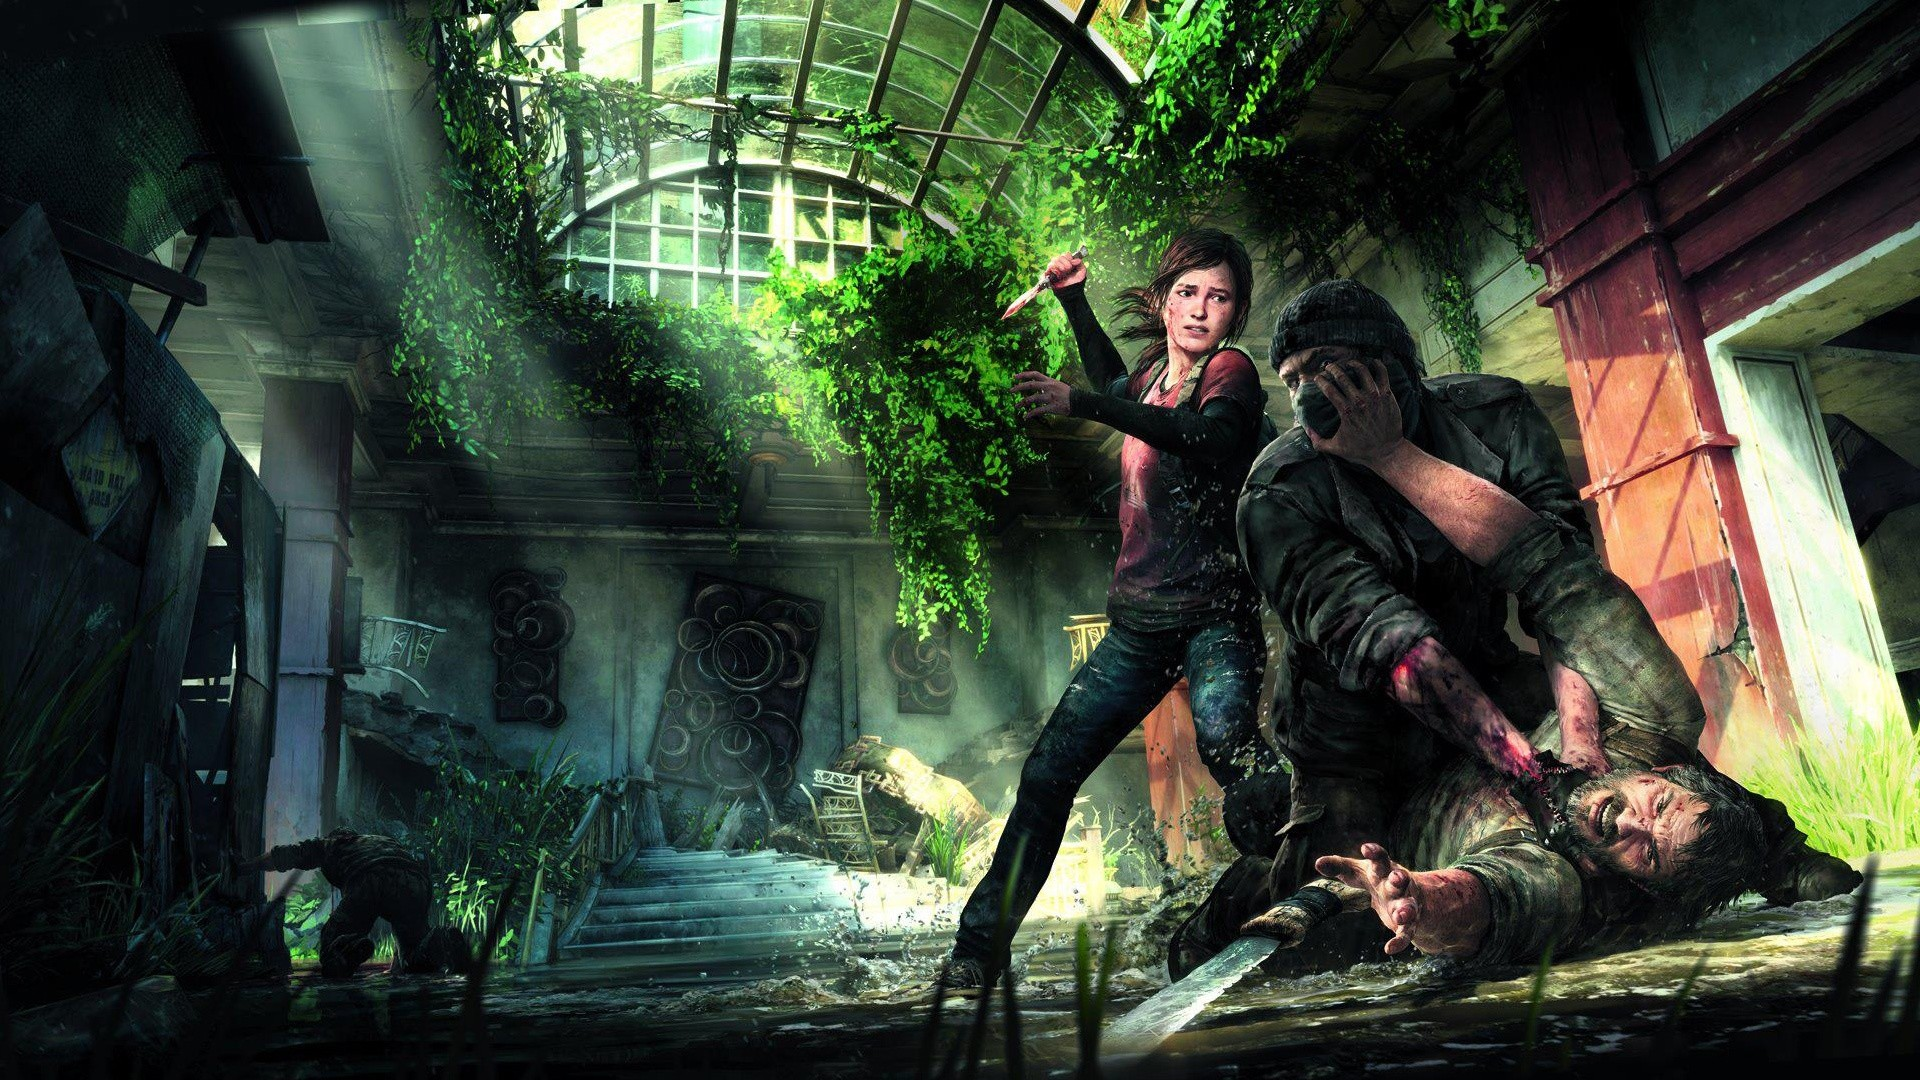 the last of us ps3 game wallpaper. 1920×1080